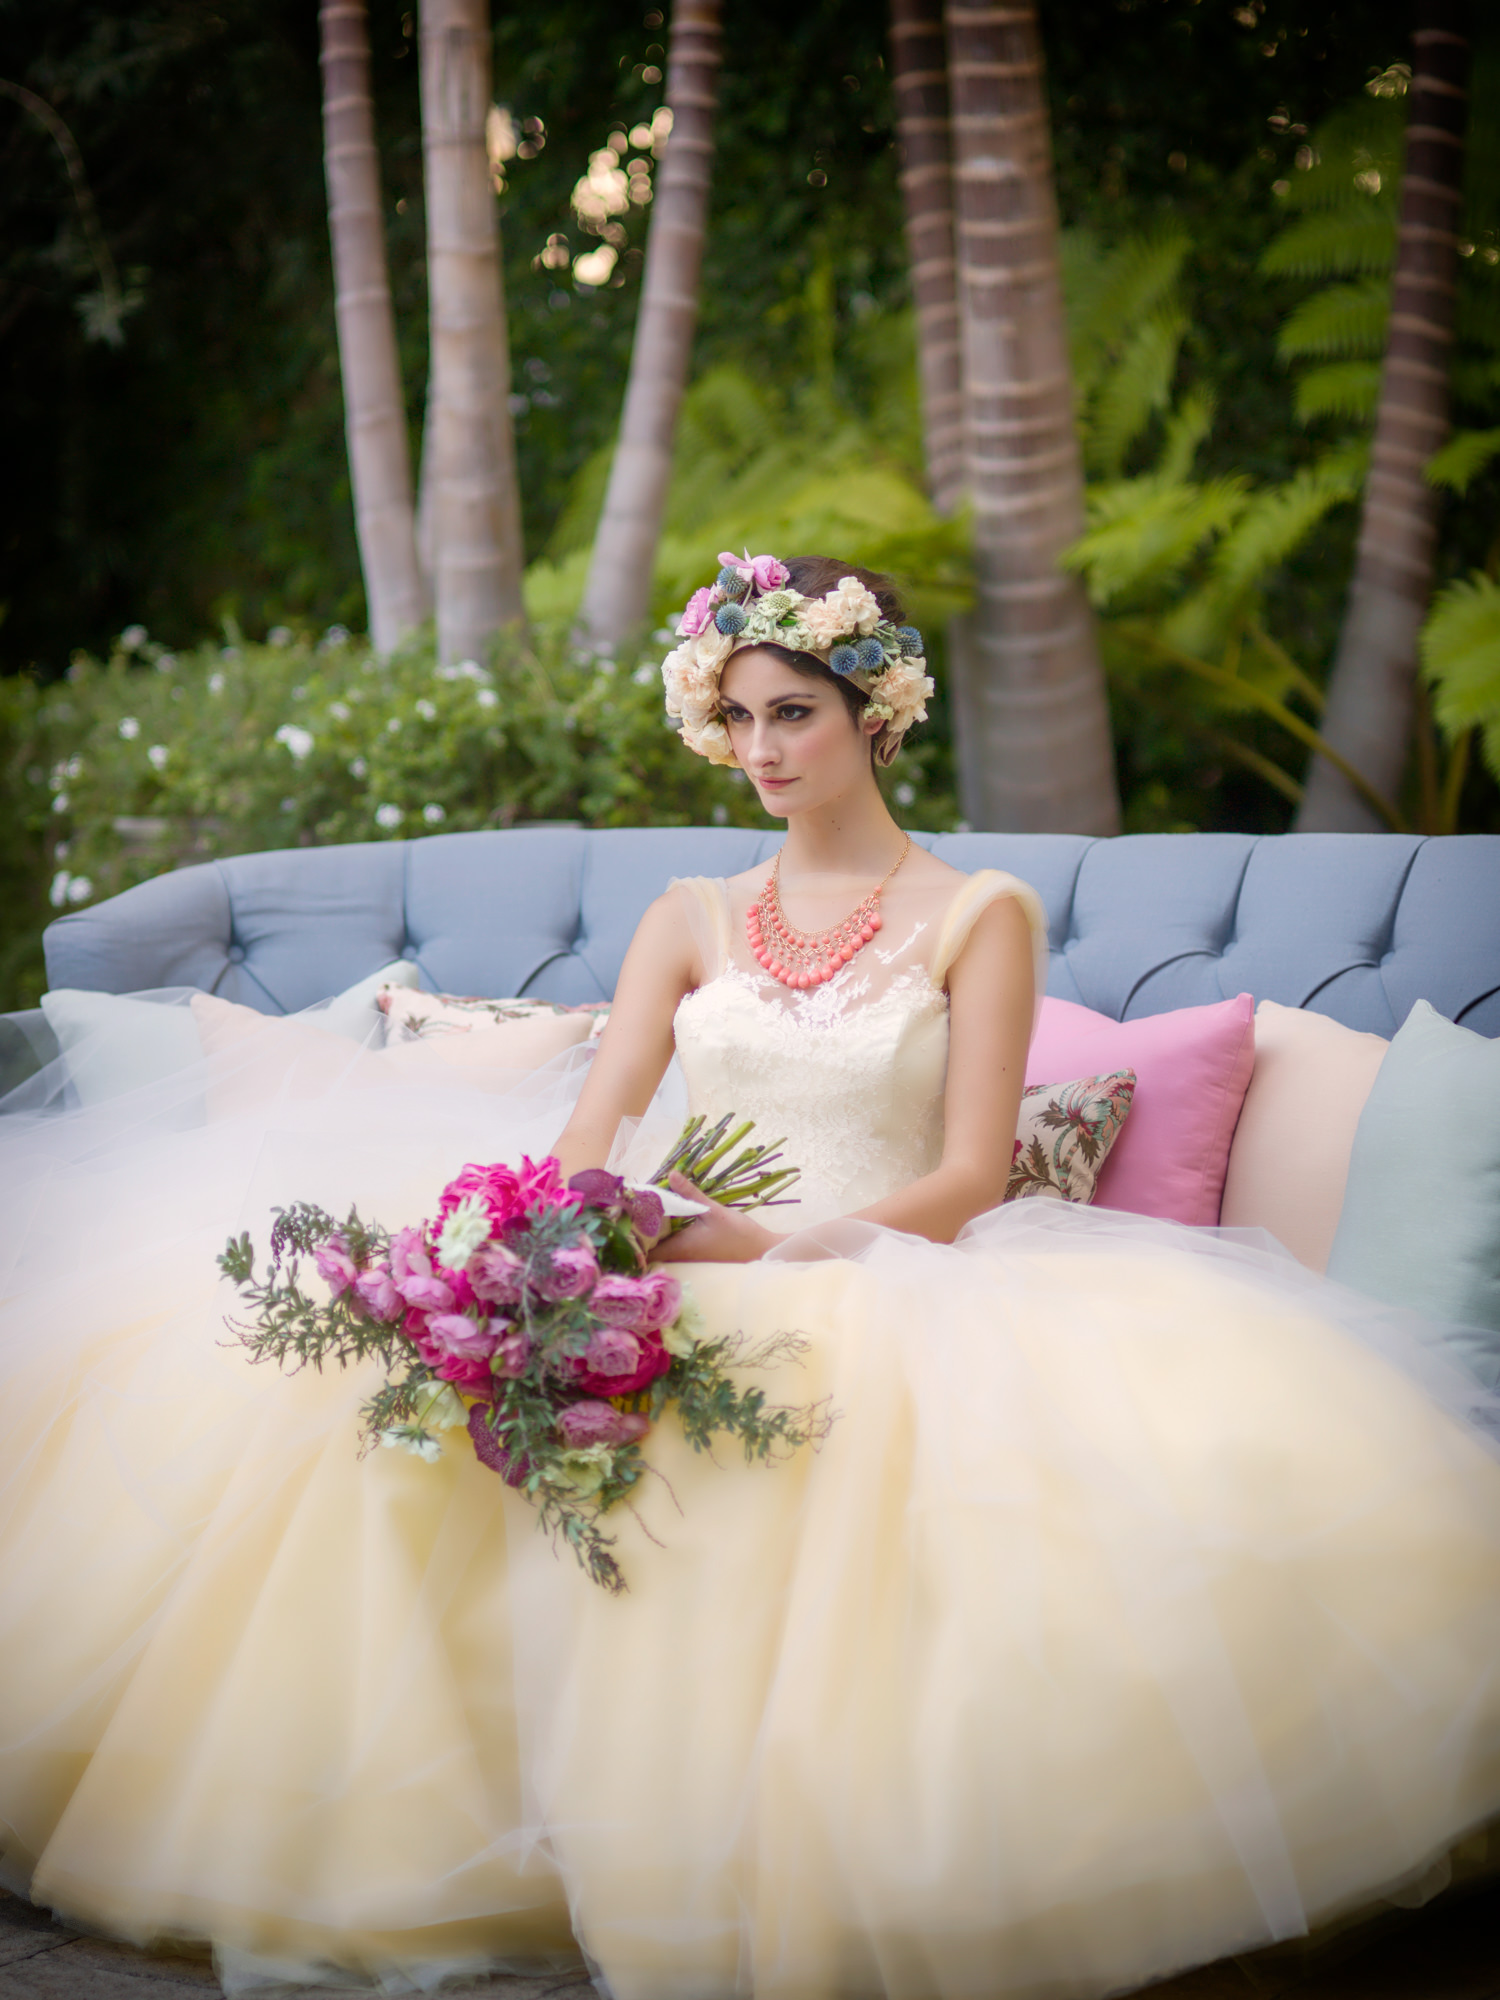 Bride with large floral crown and pink summer bouquet - photo by Roberto Valenzuela